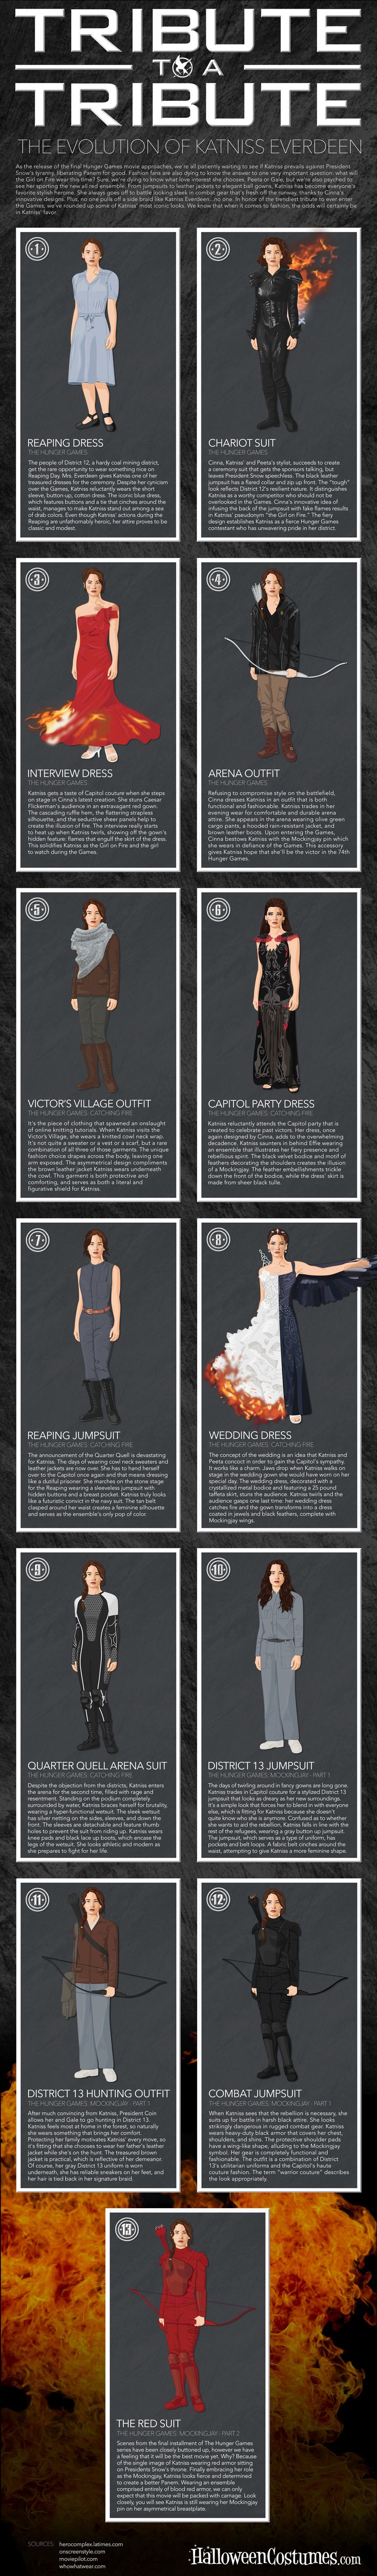 Tribute to a Tribute: The Evolution of Katniss Everdeen #infographic #Entertainment